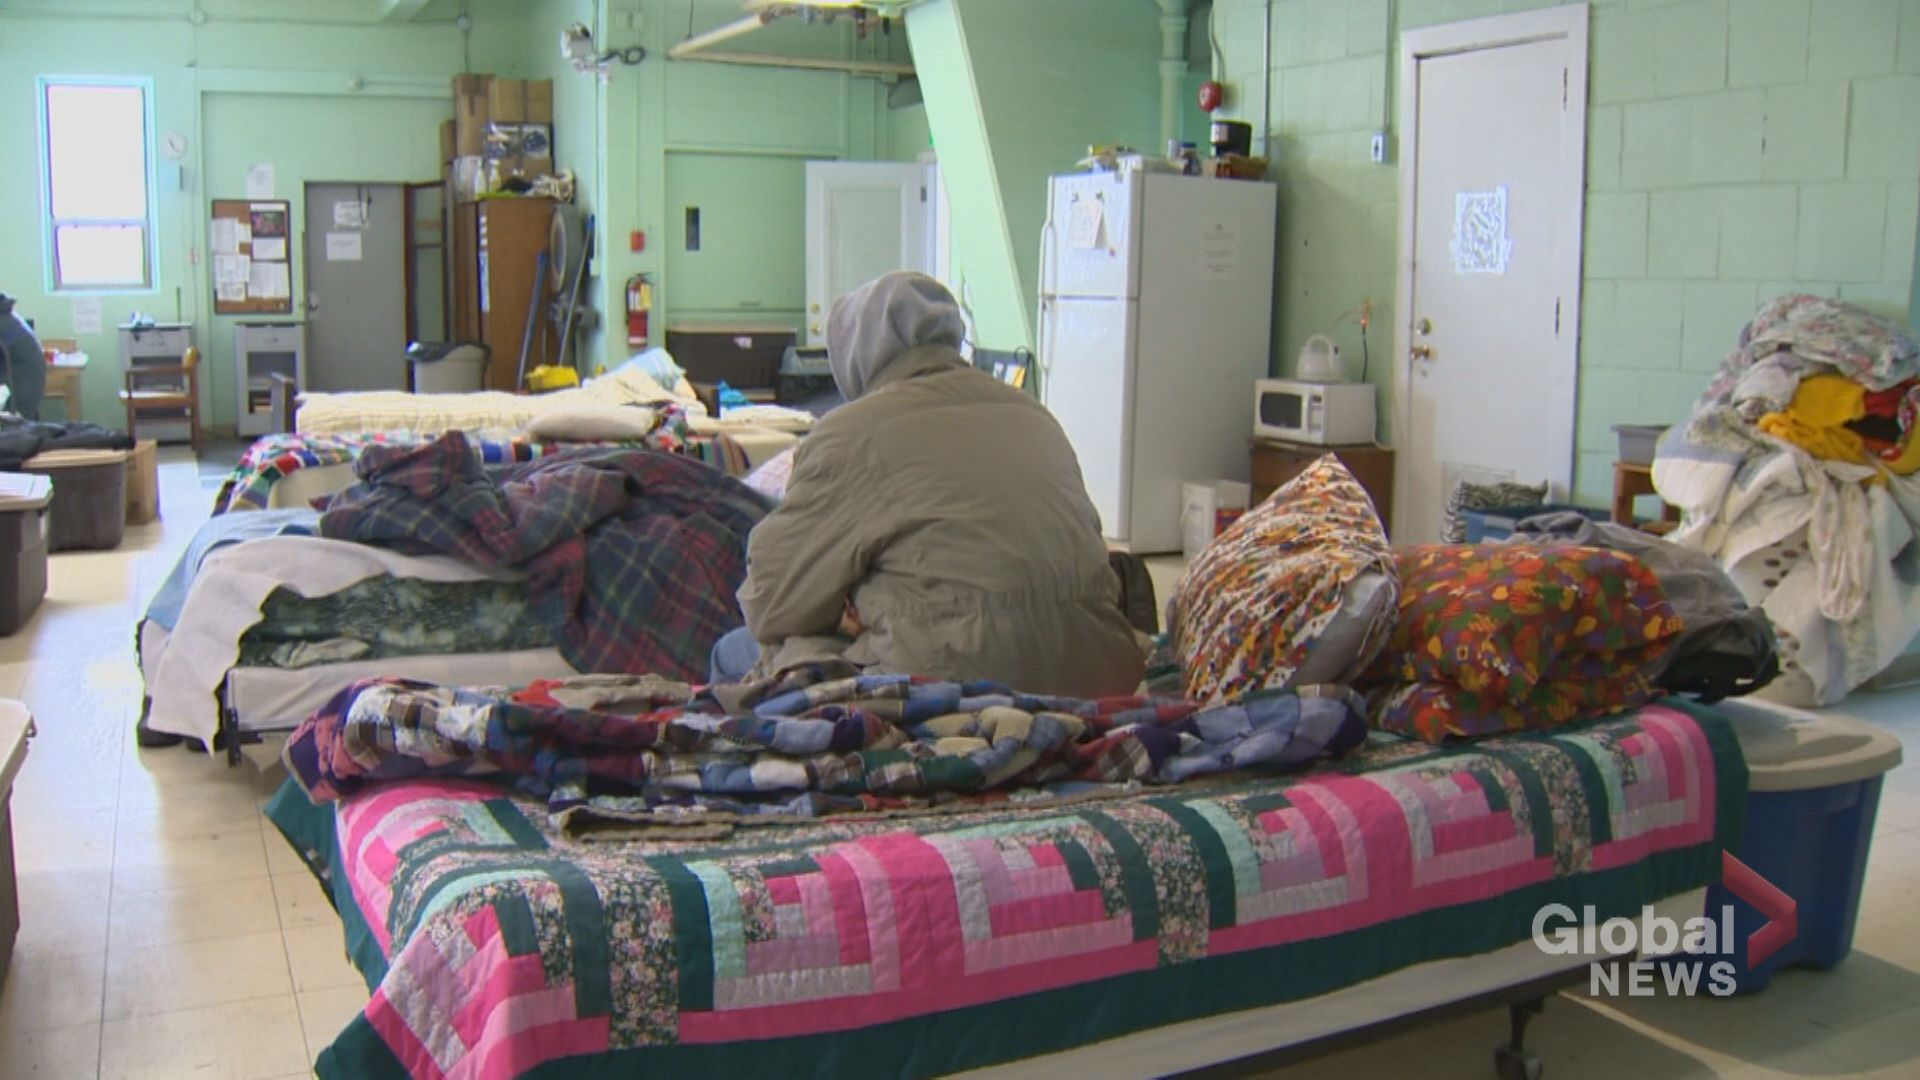 Shelter staff concerned about homelessness in Fredericton